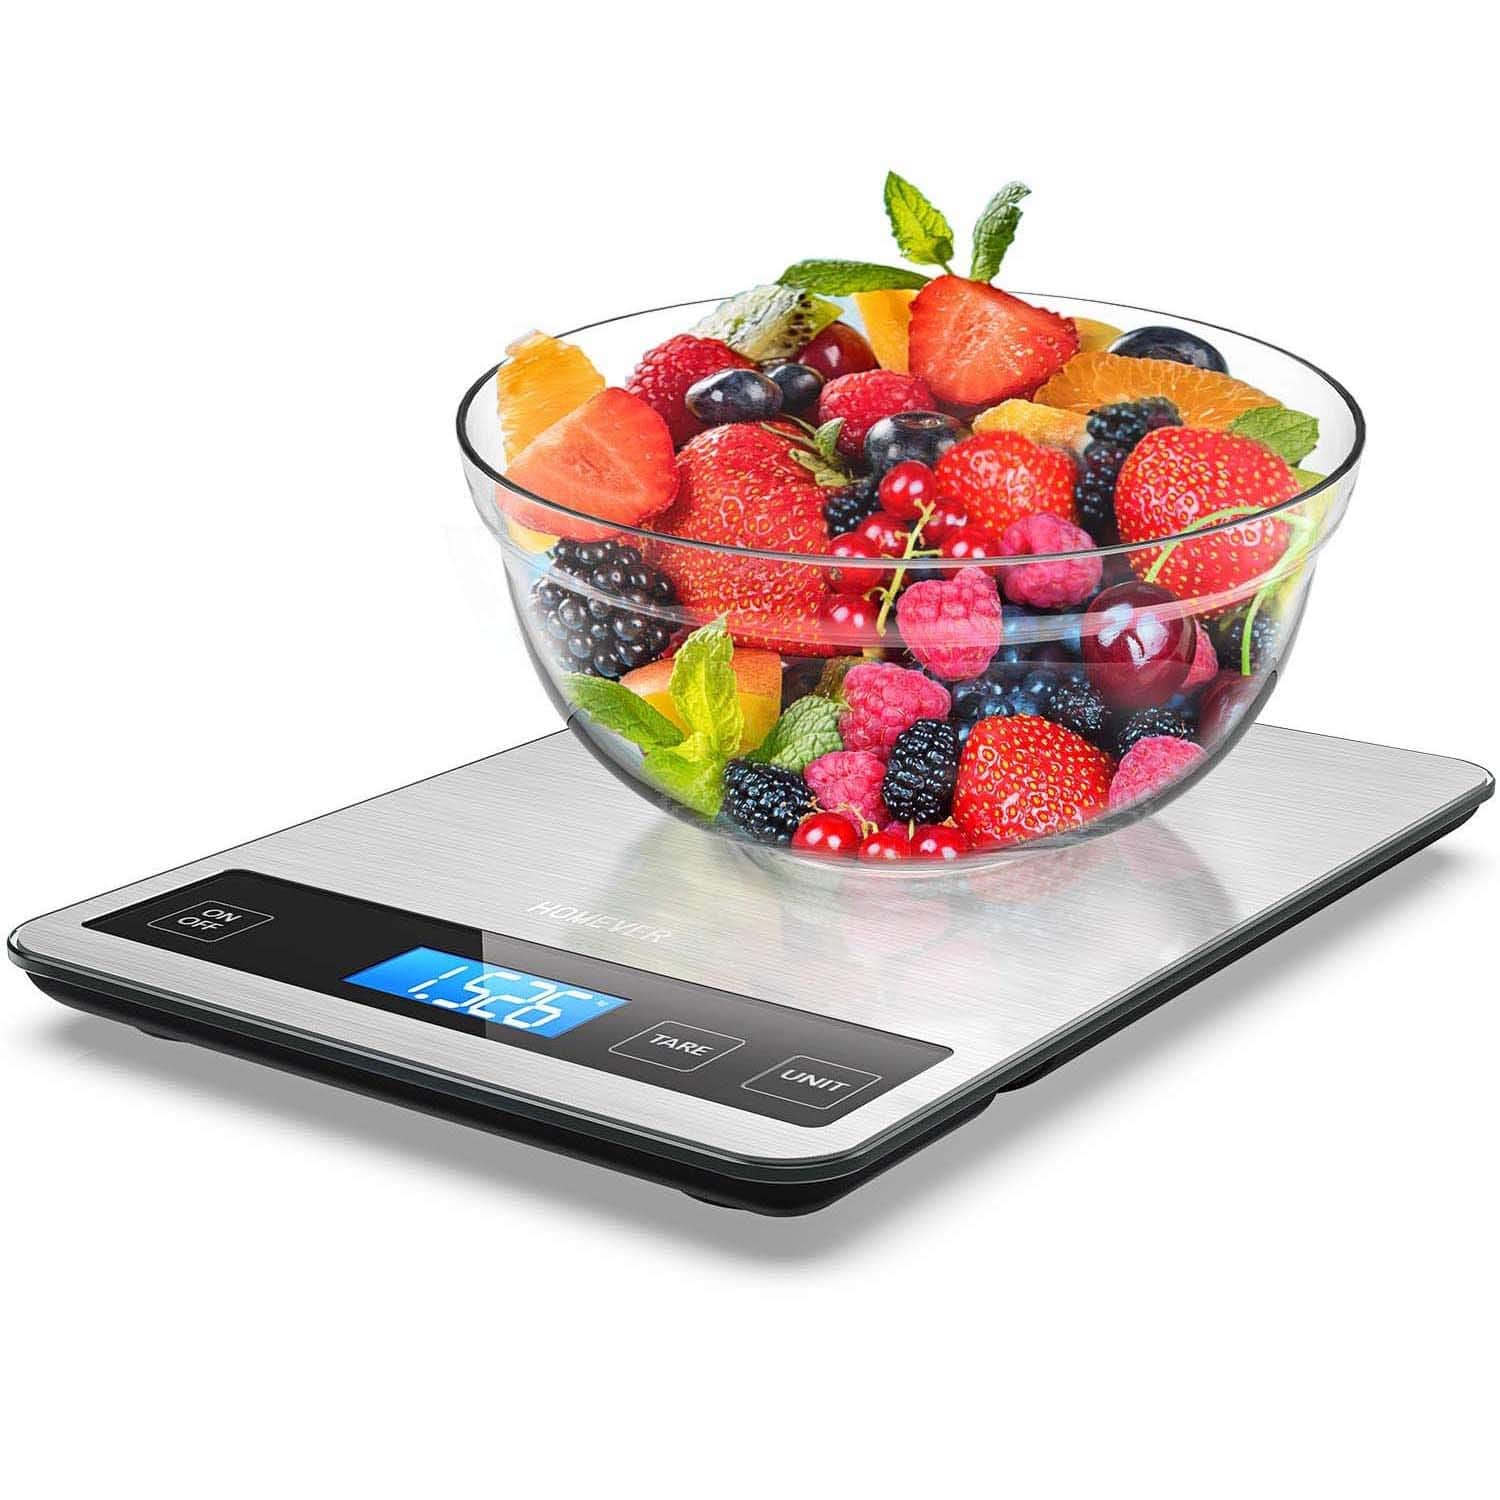 Bolan Tech via Amazon: Homever 15kg Digital Food Scale for $12.99 with Code + Free Shipping with Prime or on Orders $25+